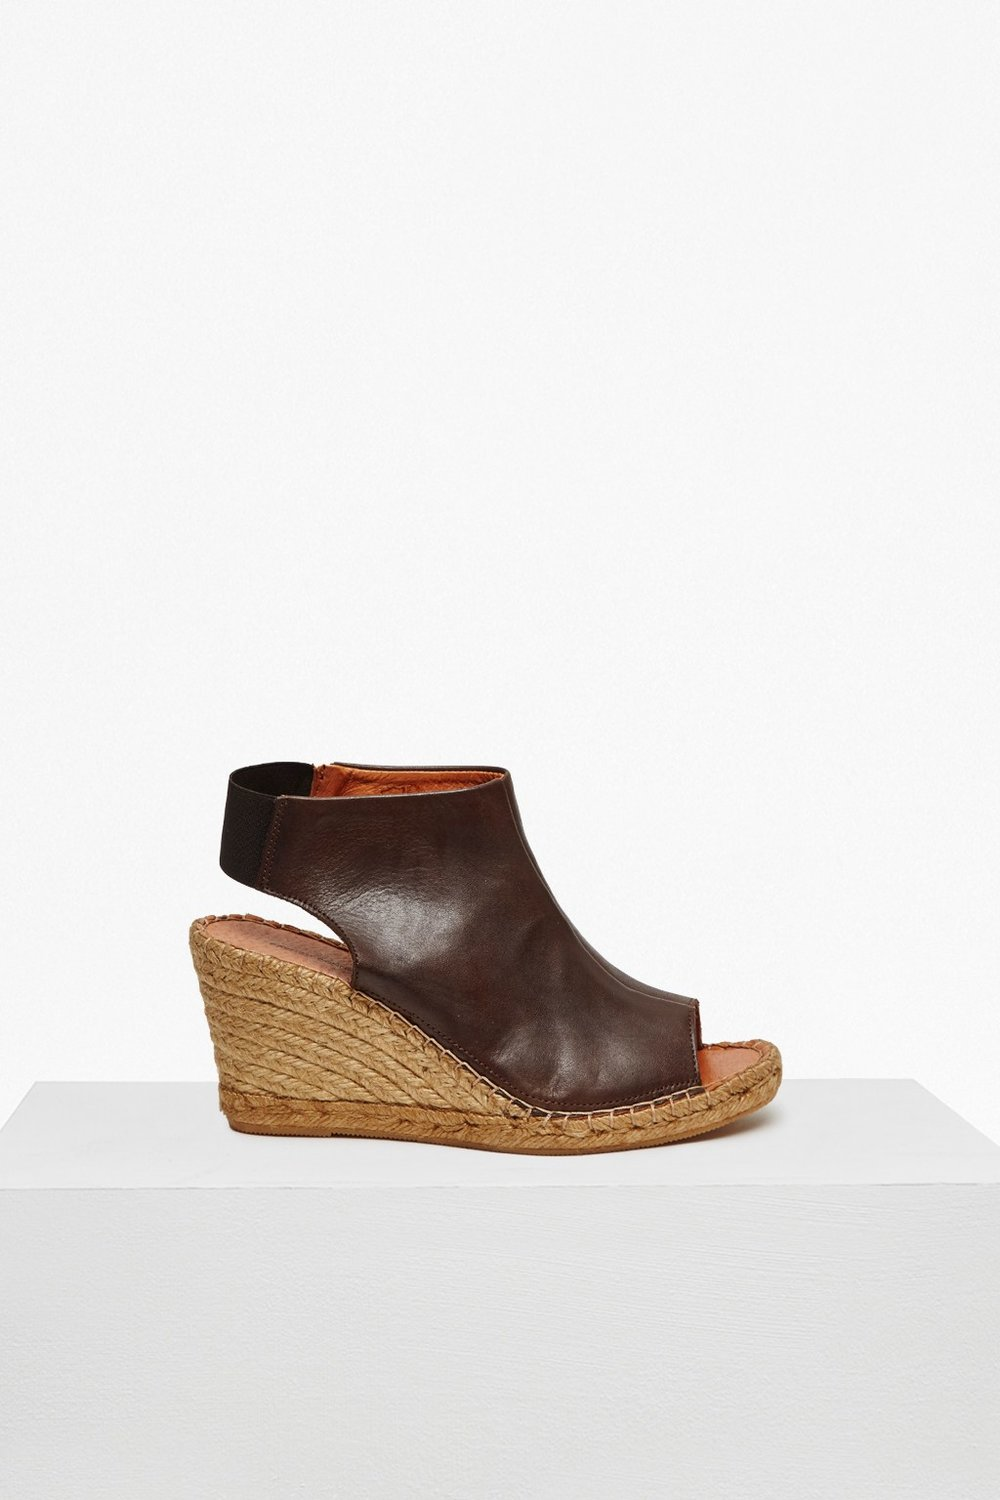 Avery Leather Espadrille Wedge, French Connection, £90